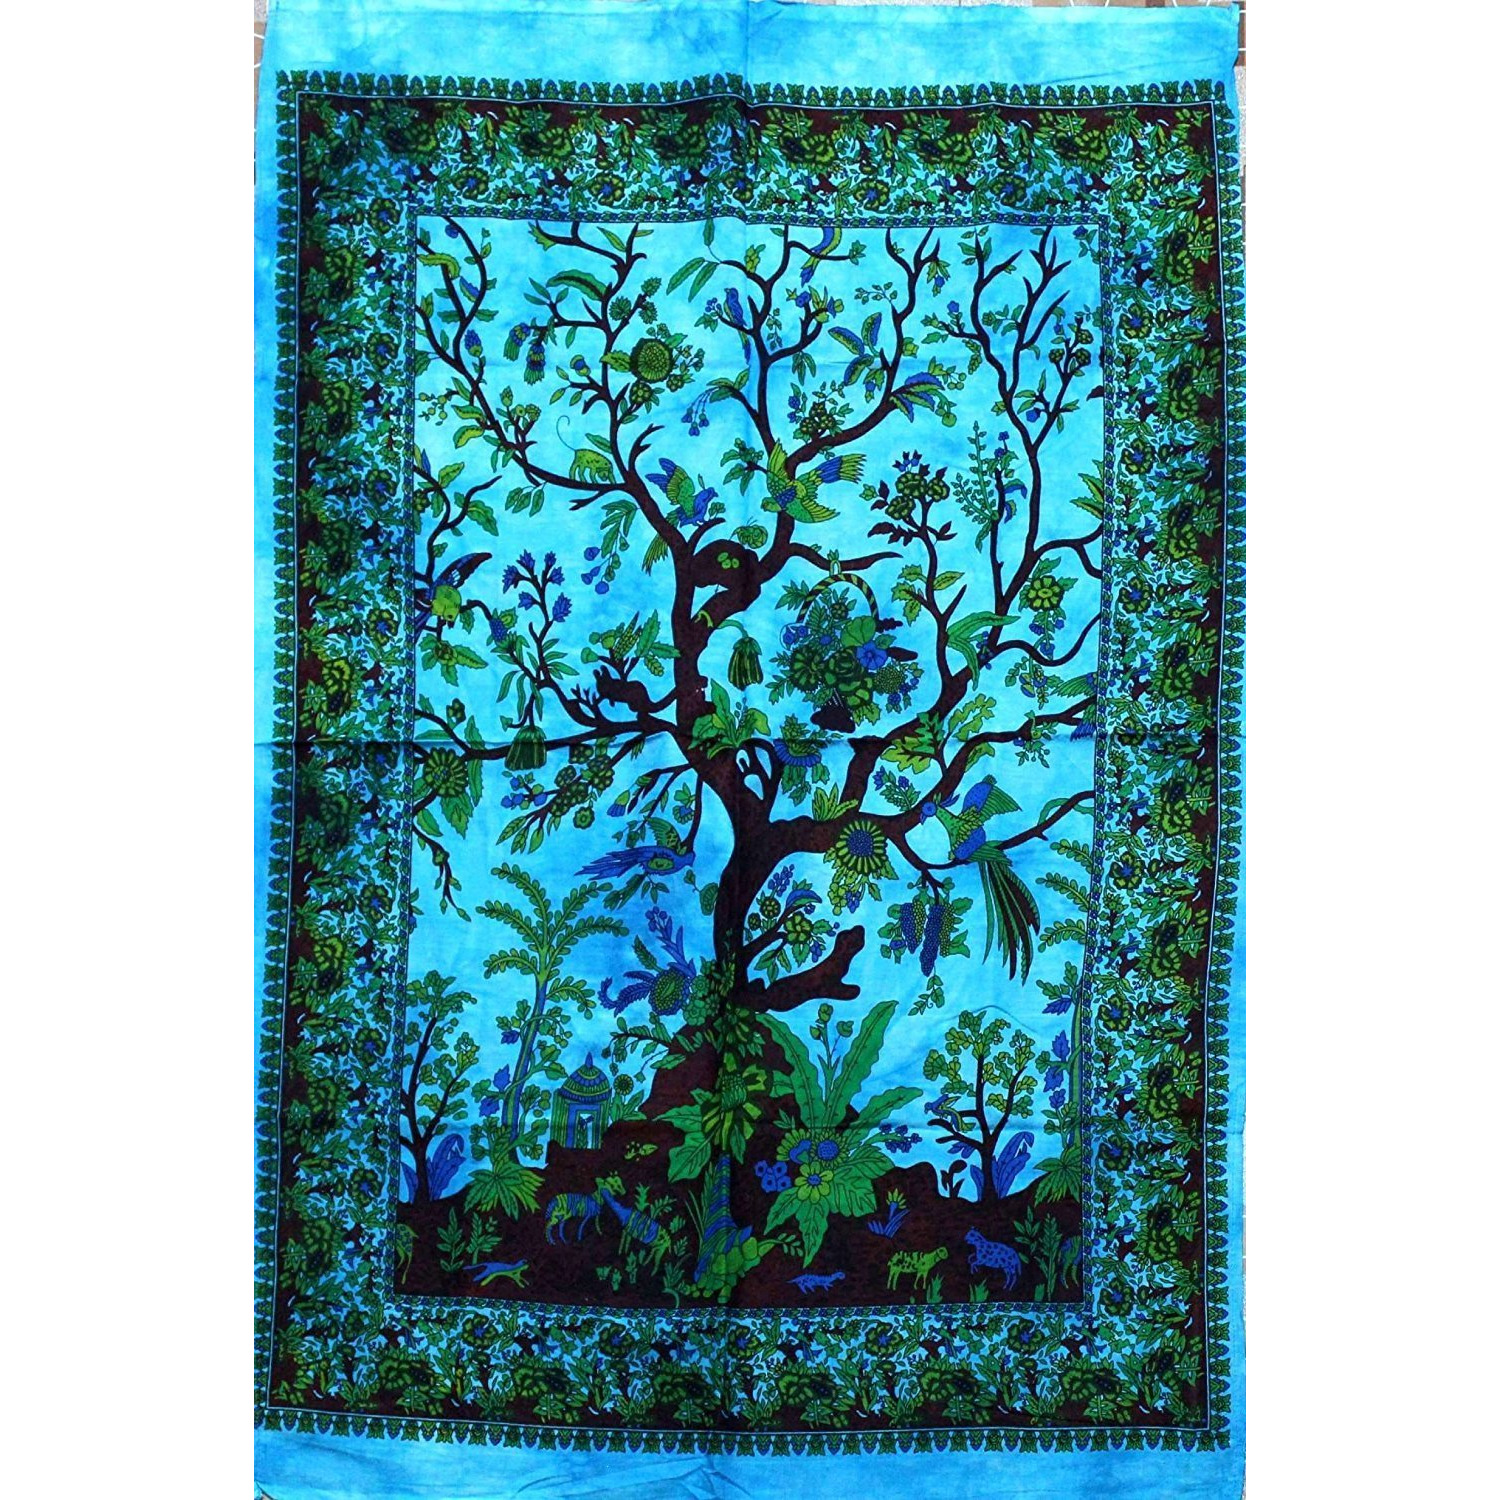 Tree of Life Tie-Dye Tapestry Cloth Wall Hanging Poster